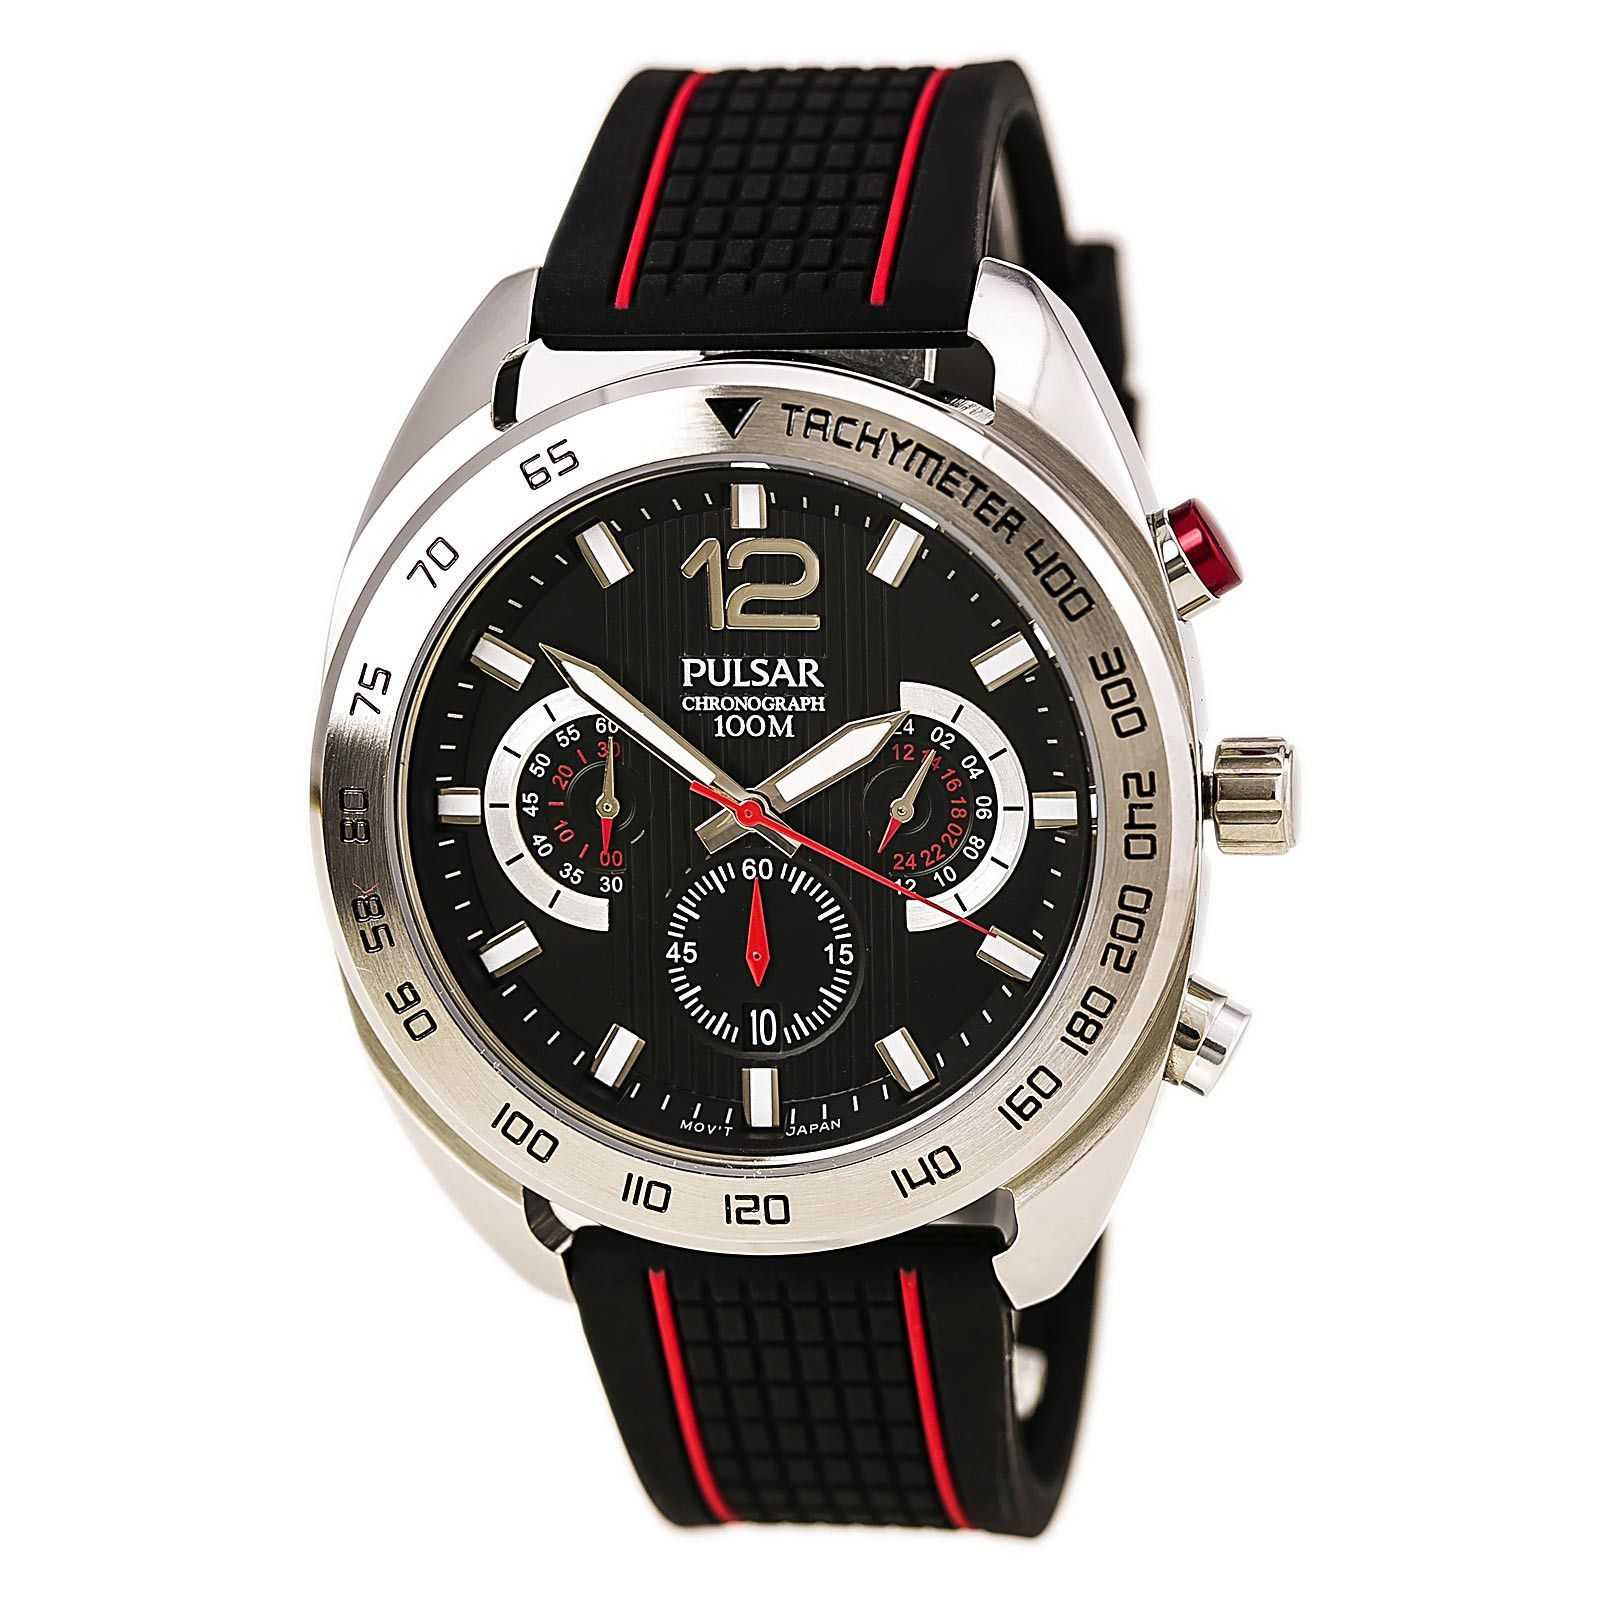 Pulsar PT3633 Men's On The Go Black Dial Black & Red Silicone Strap Chronograph Watch